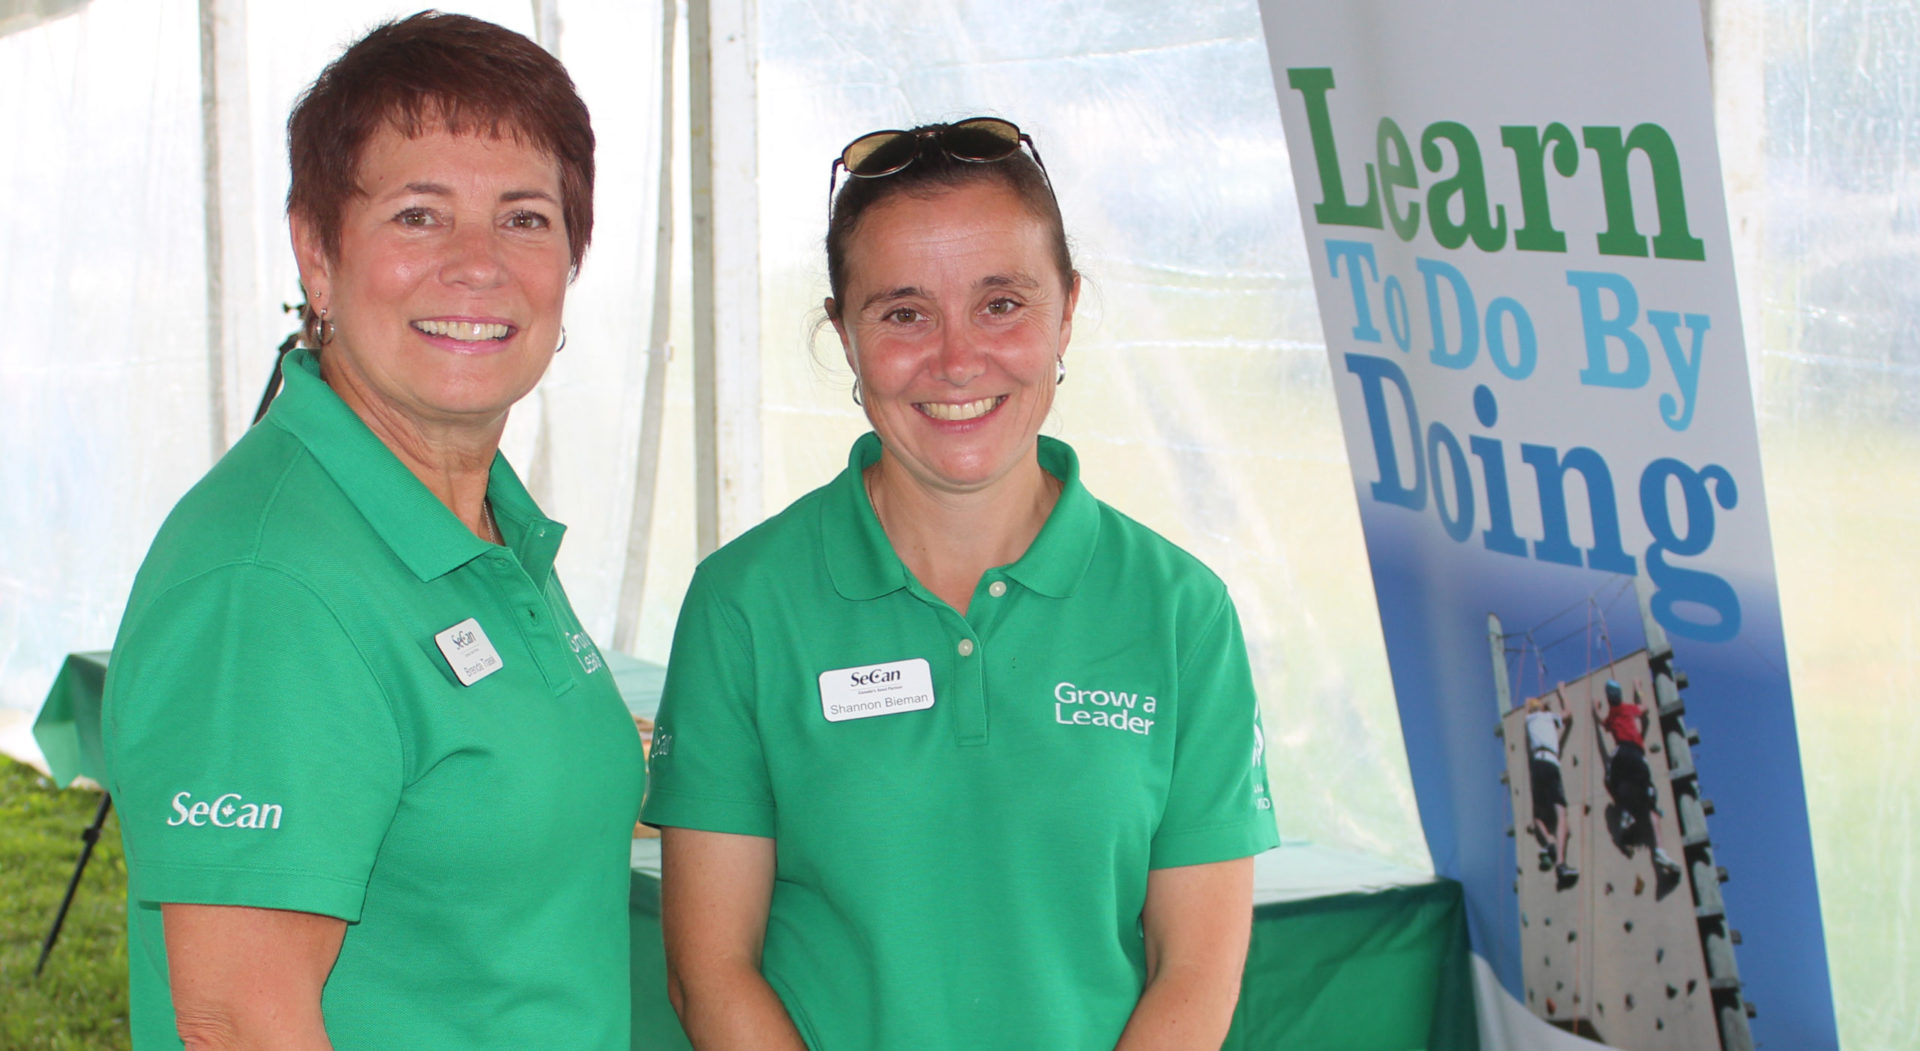 Two people in green polo shirts standing in front of Learn To Do By Doing banner under covered tent.